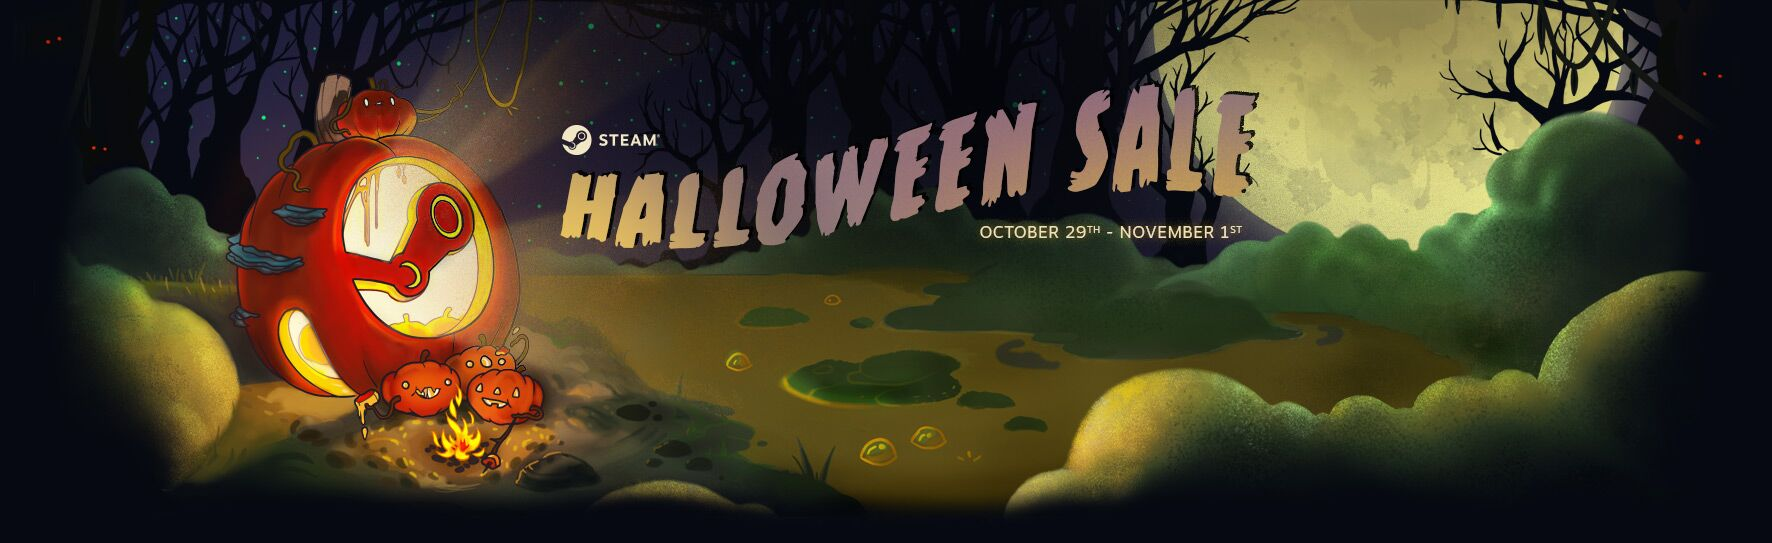 Steam Halloween Sale 2018 aims for scarily low savings